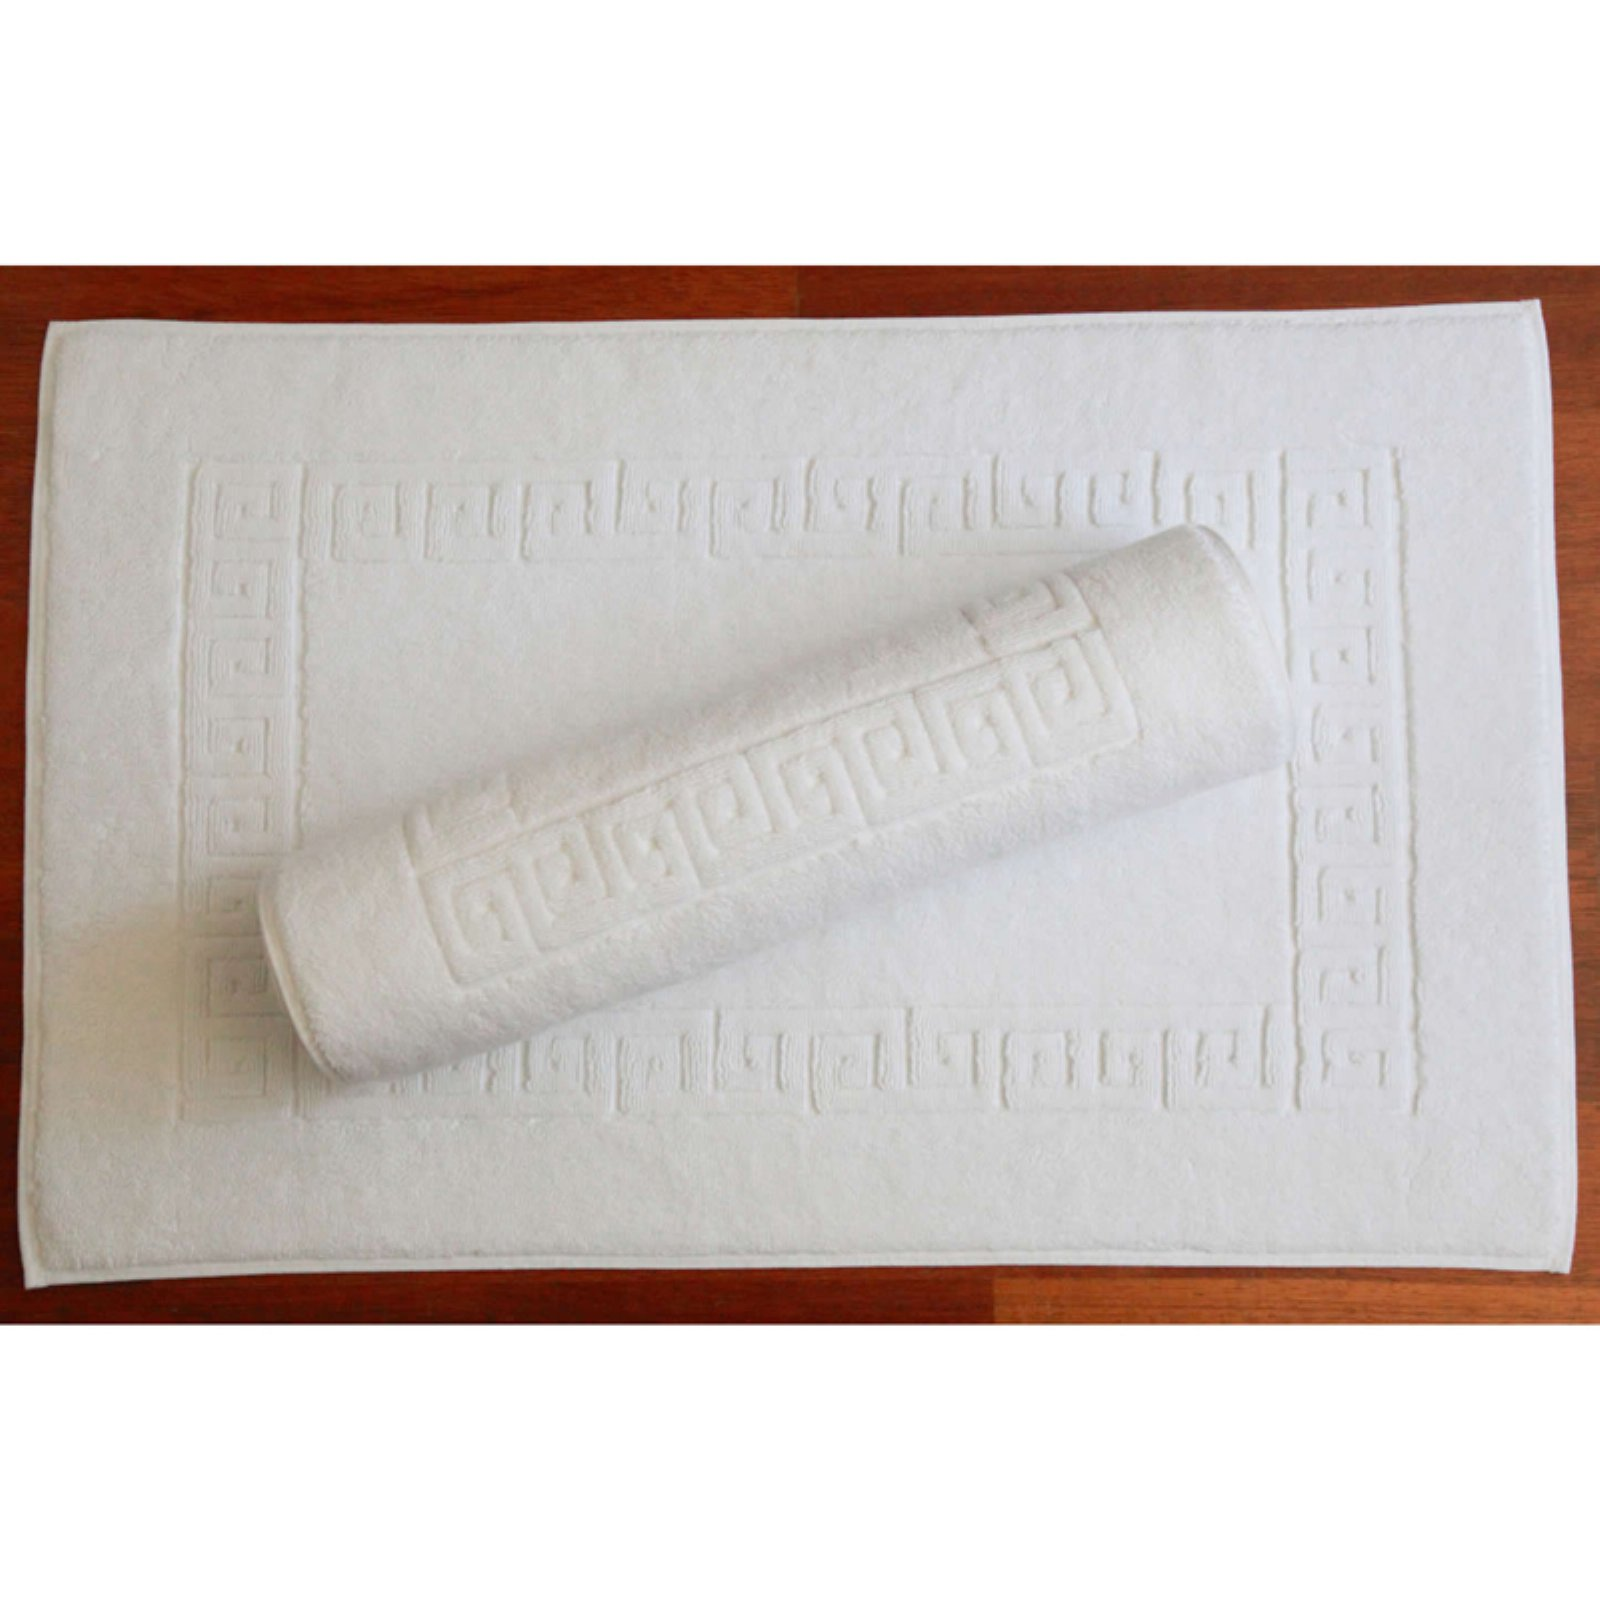 Luxury Hotel & Spa Greek Key Turkish Cotton Bath Mats - Set of 2